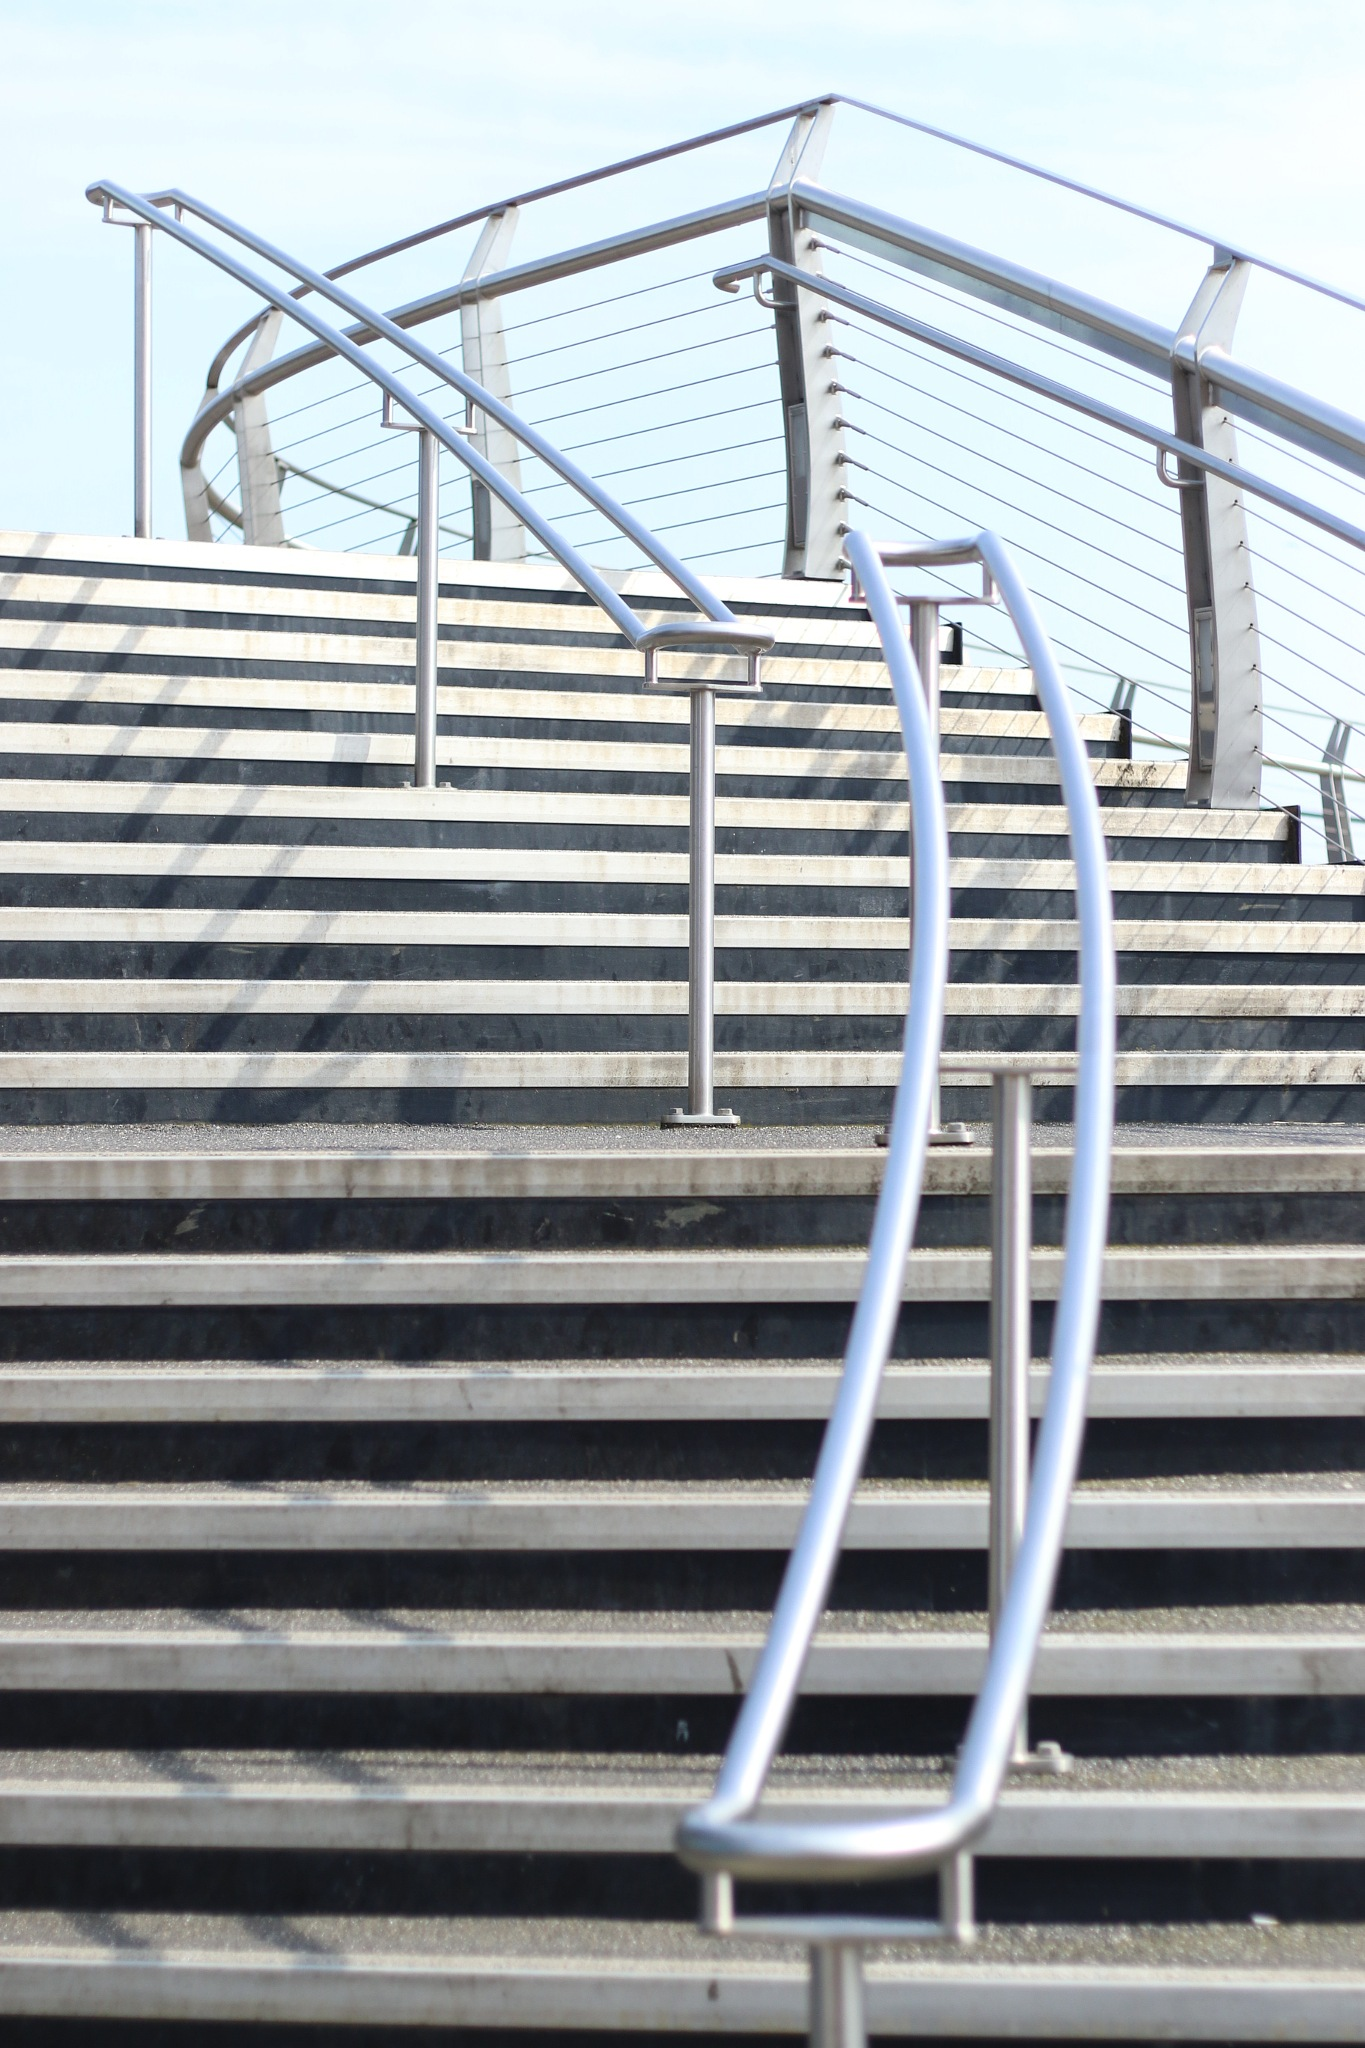 Steps. by Petehudson